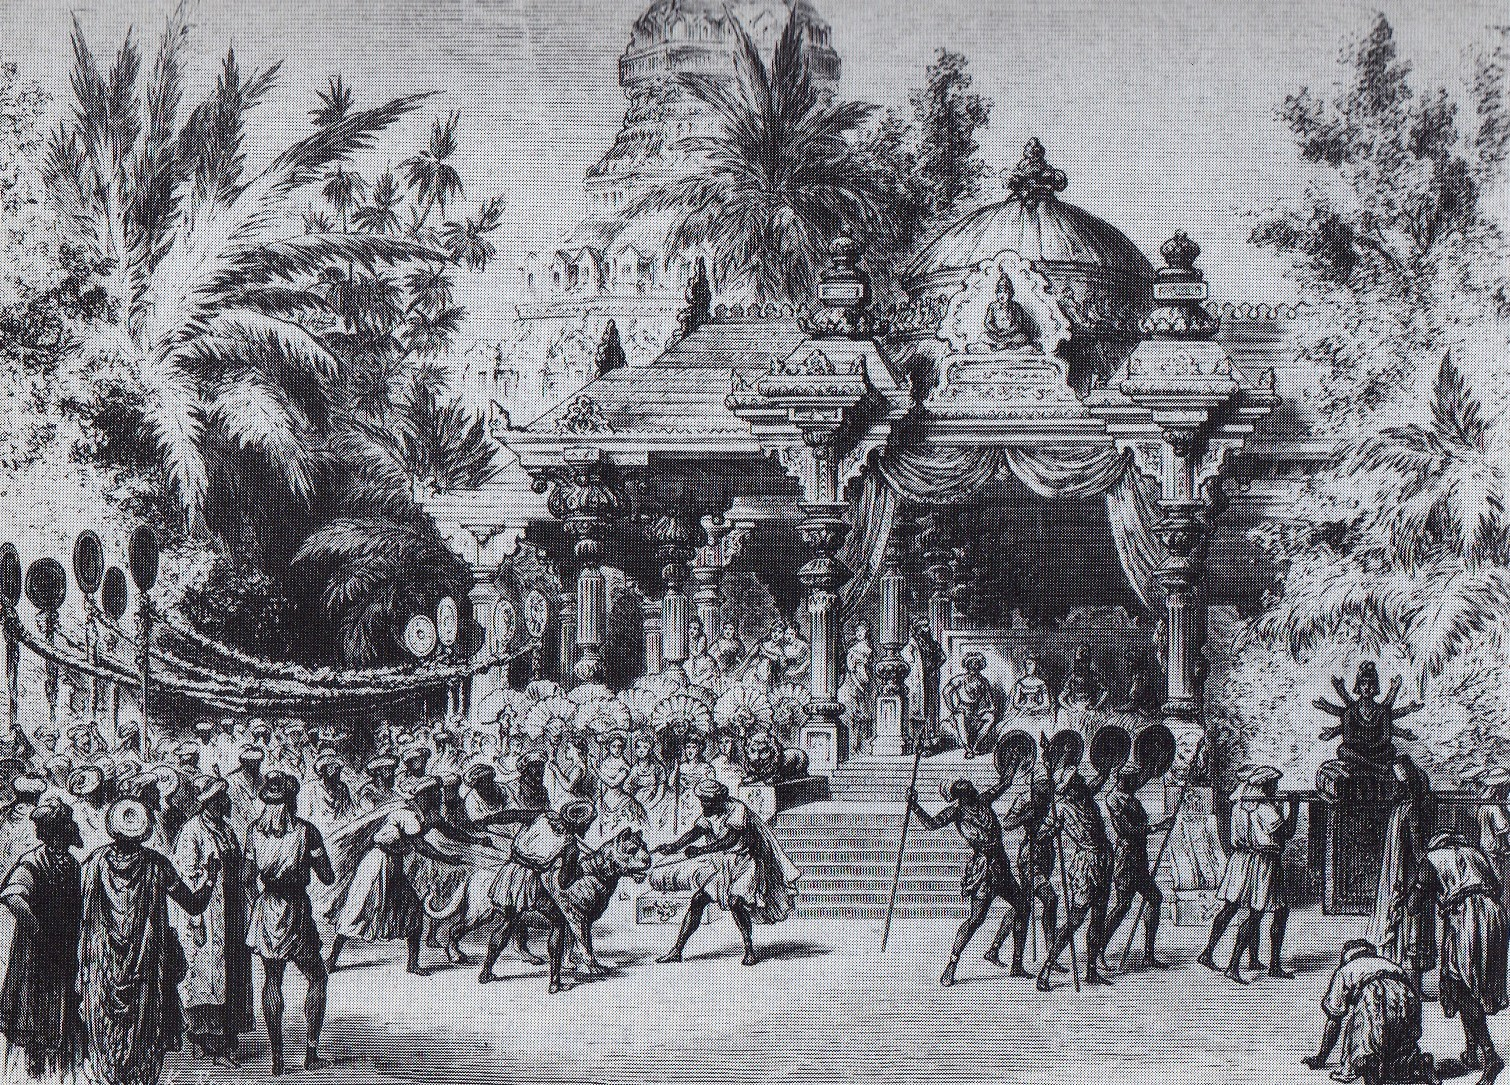 File:Bayadere -Decor Design -Act II -K. Brozh -1877.